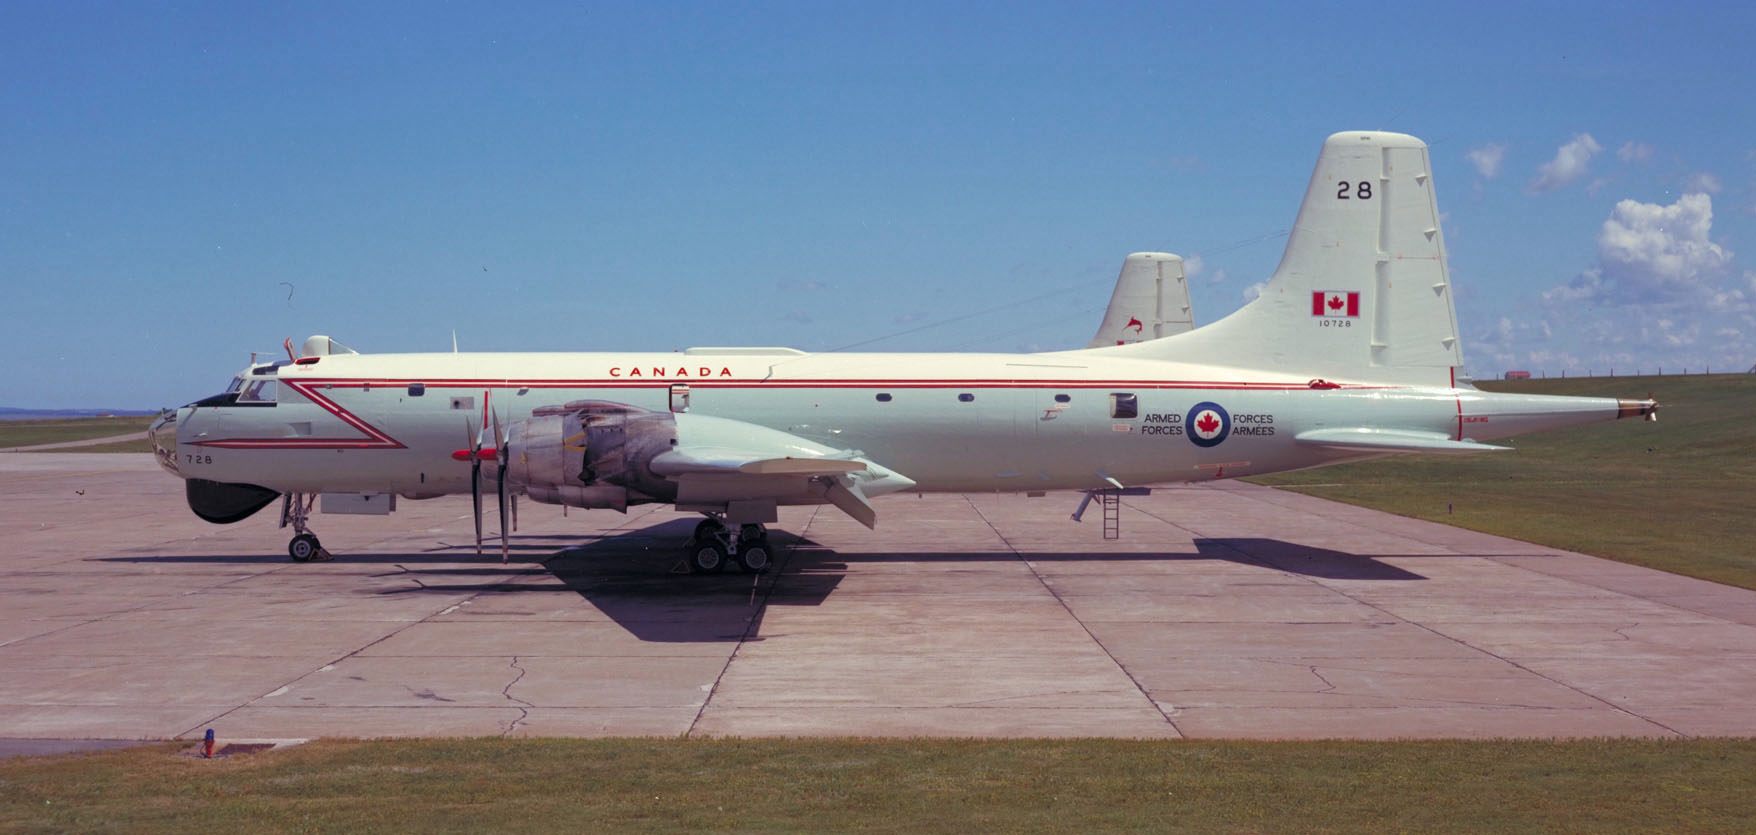 A CP-107 Argus rests on the tarmac at Canadian Forces Base Summerside, Prince Edward Island. PHOTO: DND Archives, PCN74-847